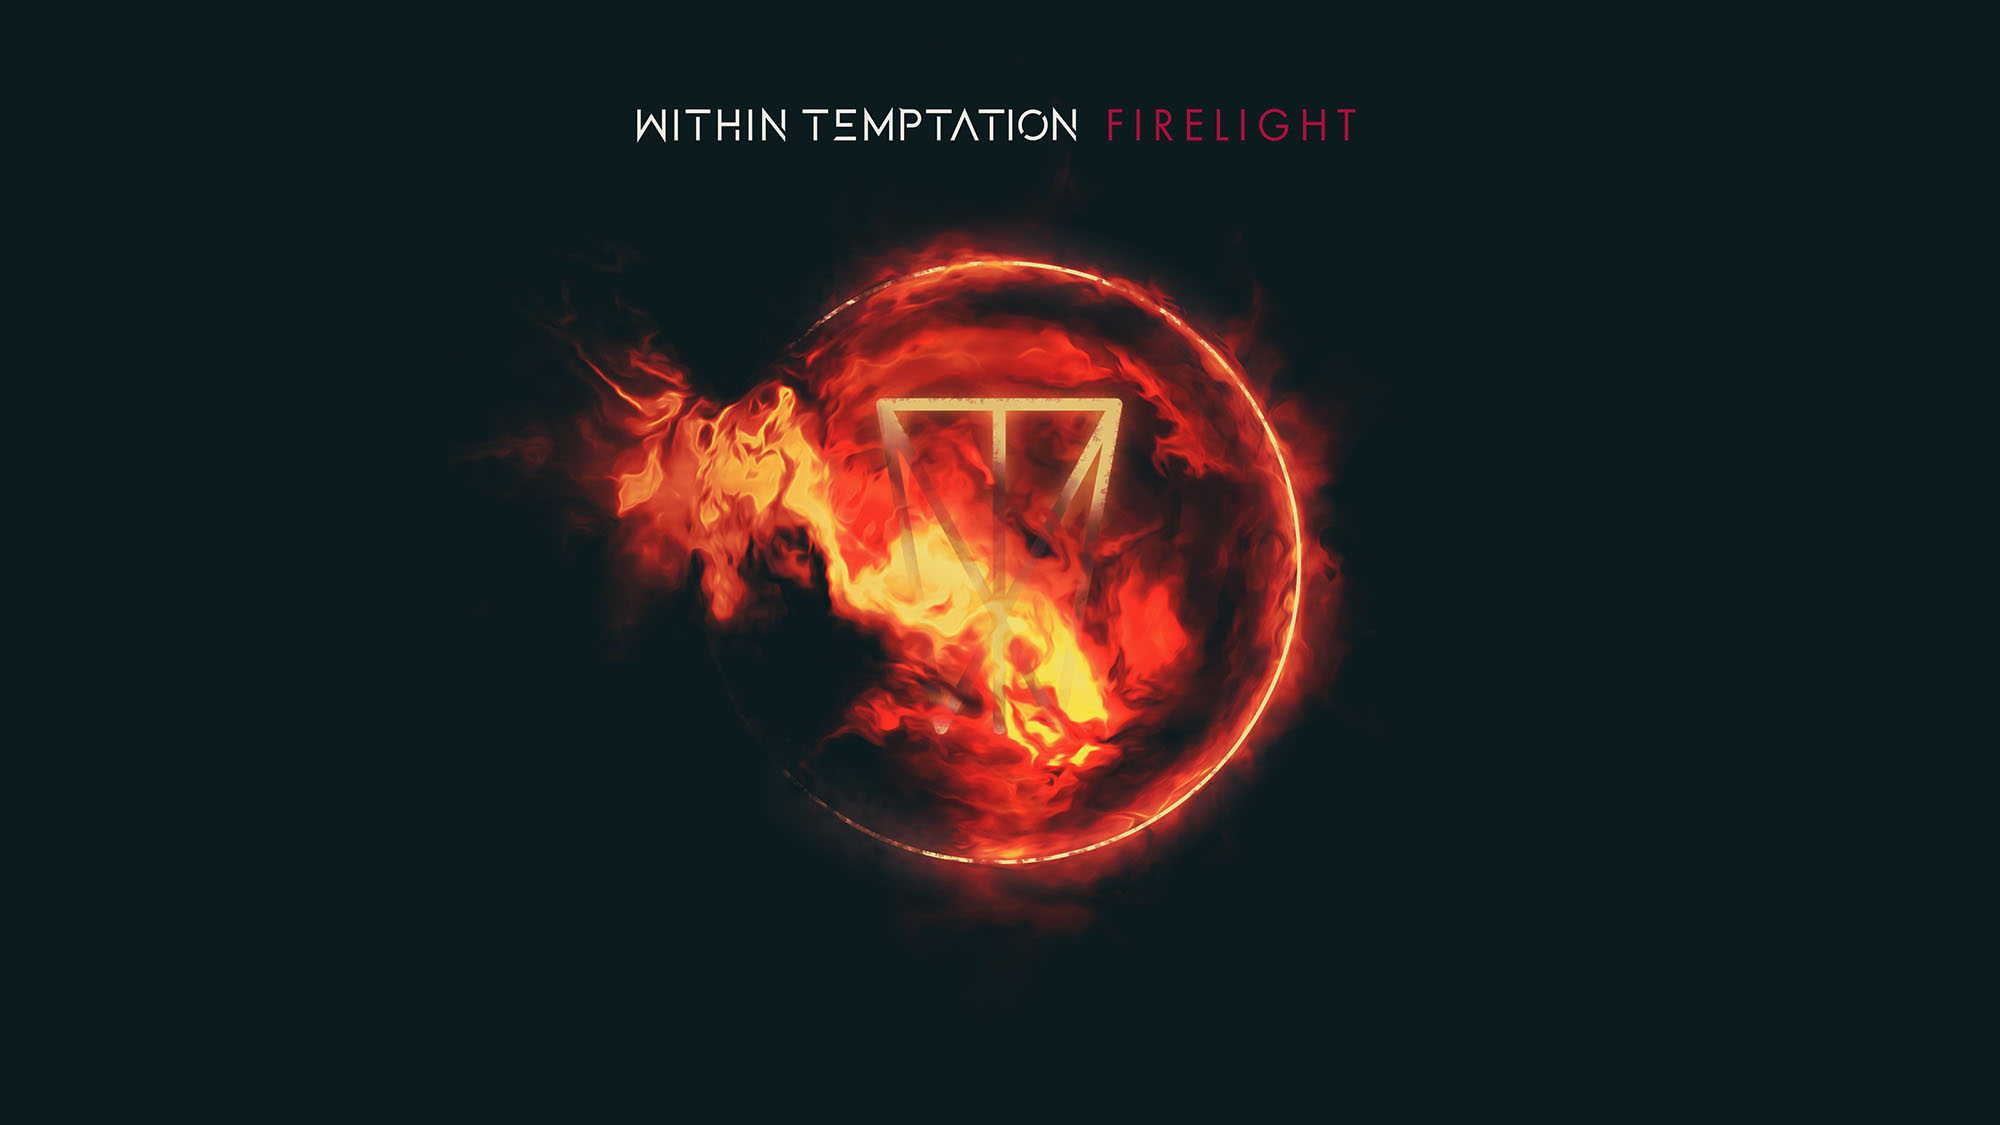 Within Temptation Jasper Steverlinck Firelight new Single 2018 new album RESIST 2019